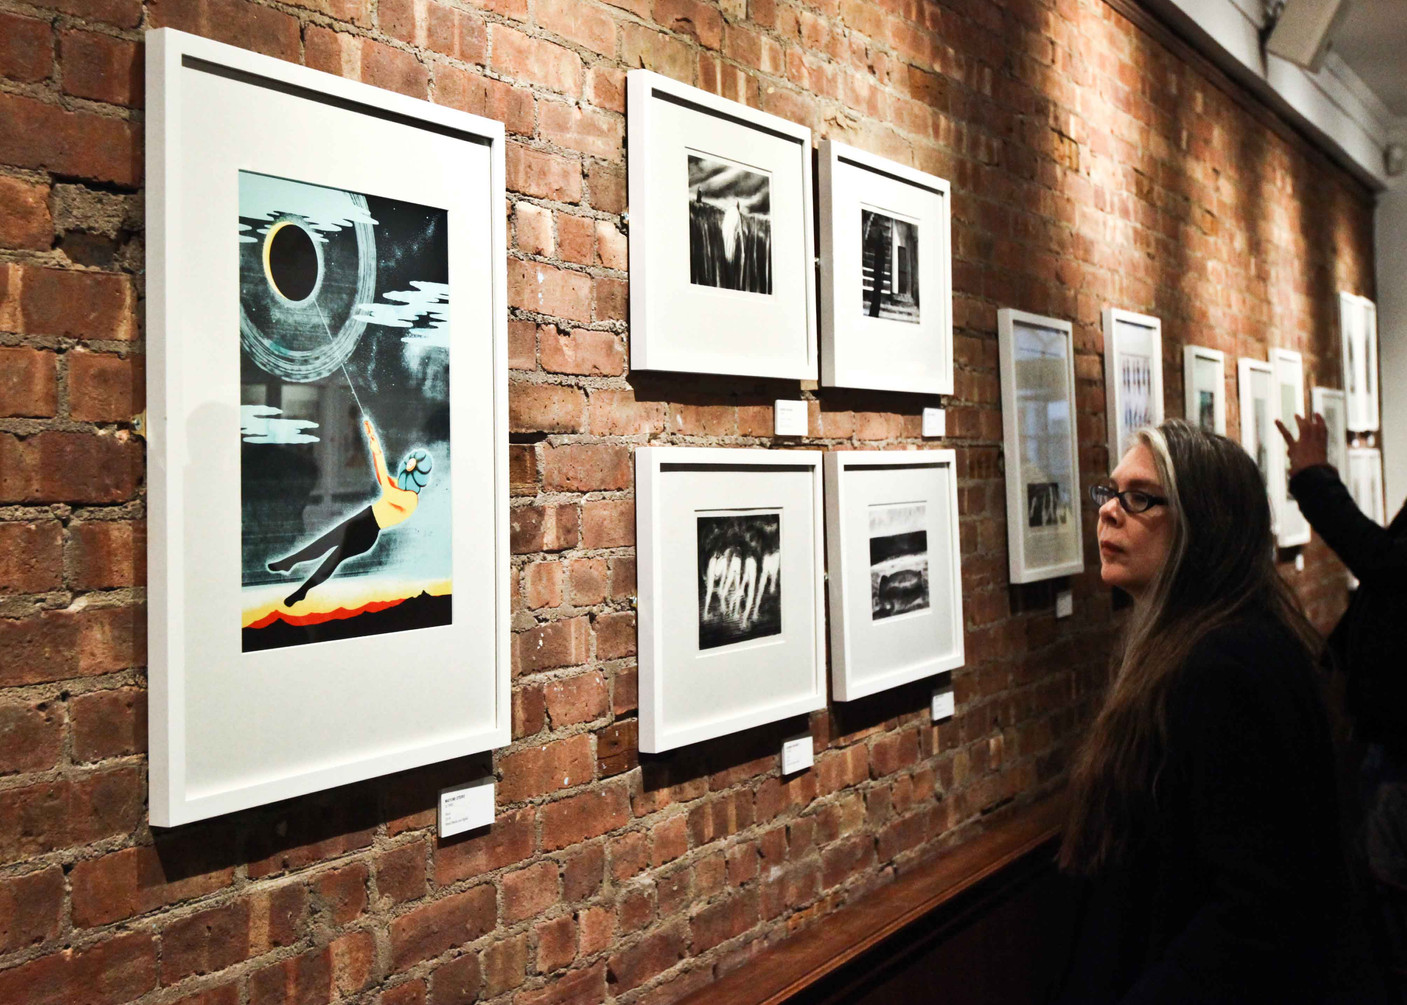 Exhibition of personal works at The Society of Illustrators